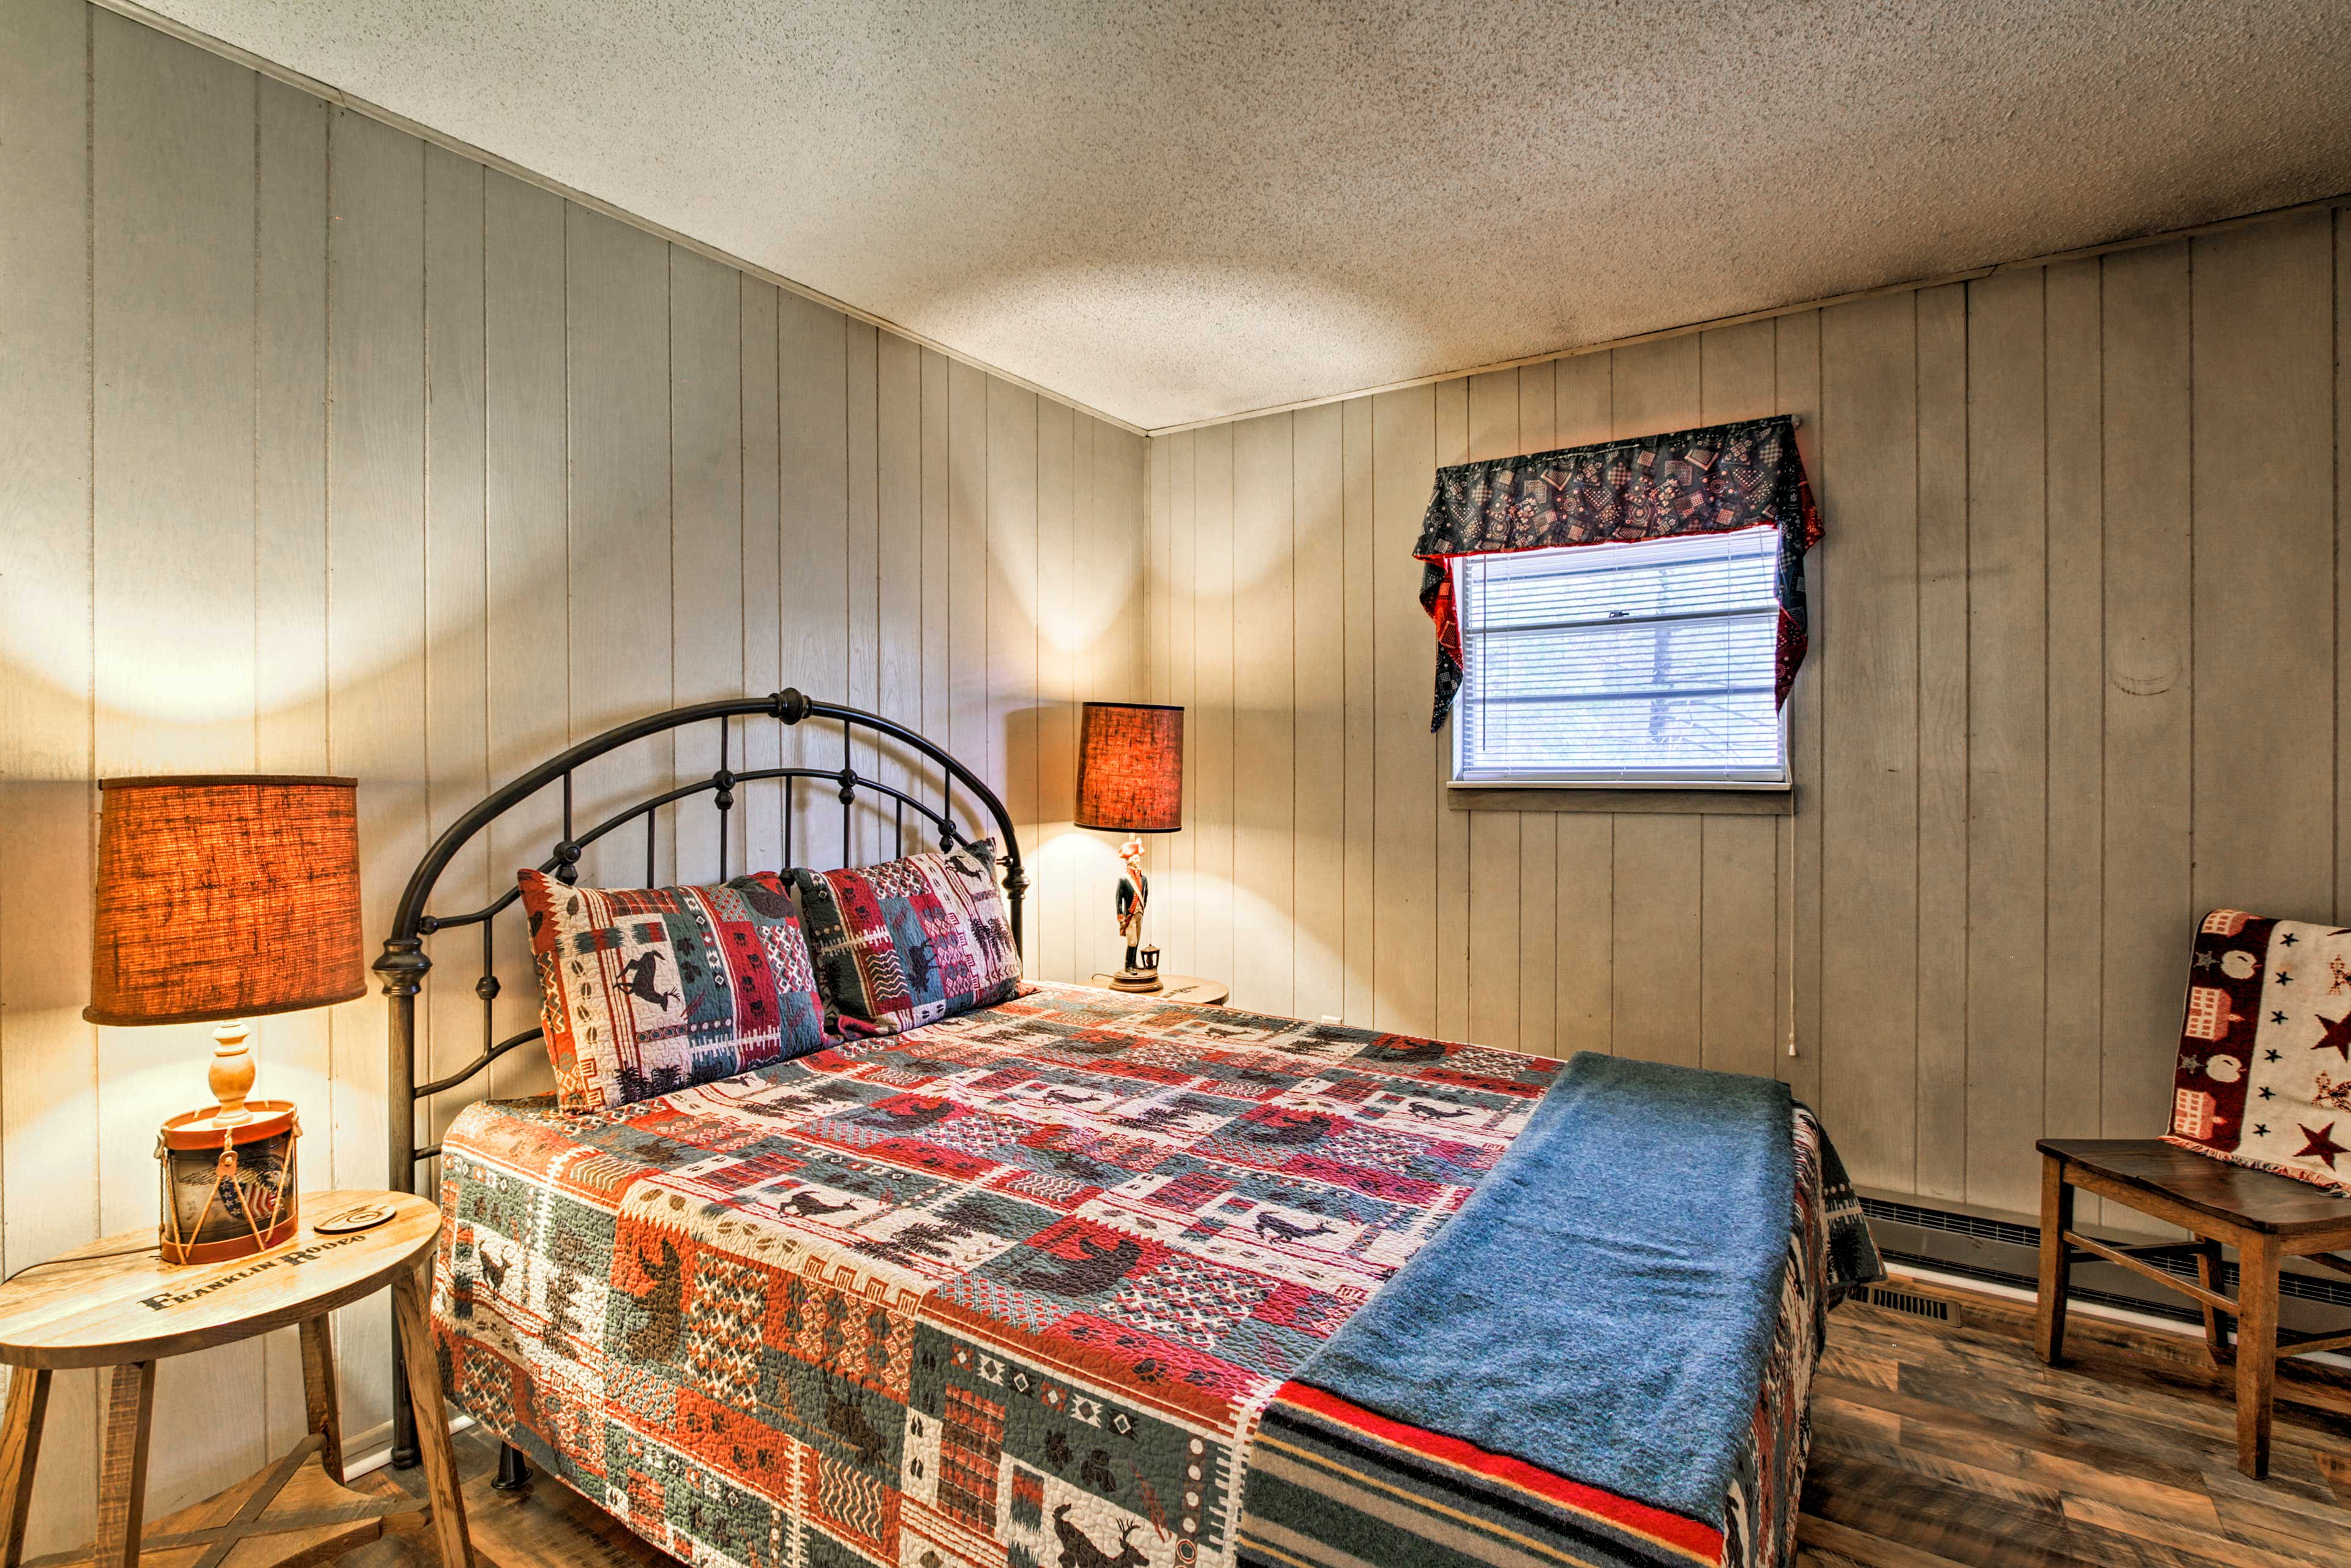 You'll find another queen-sized bed in the 3rd bedroom.